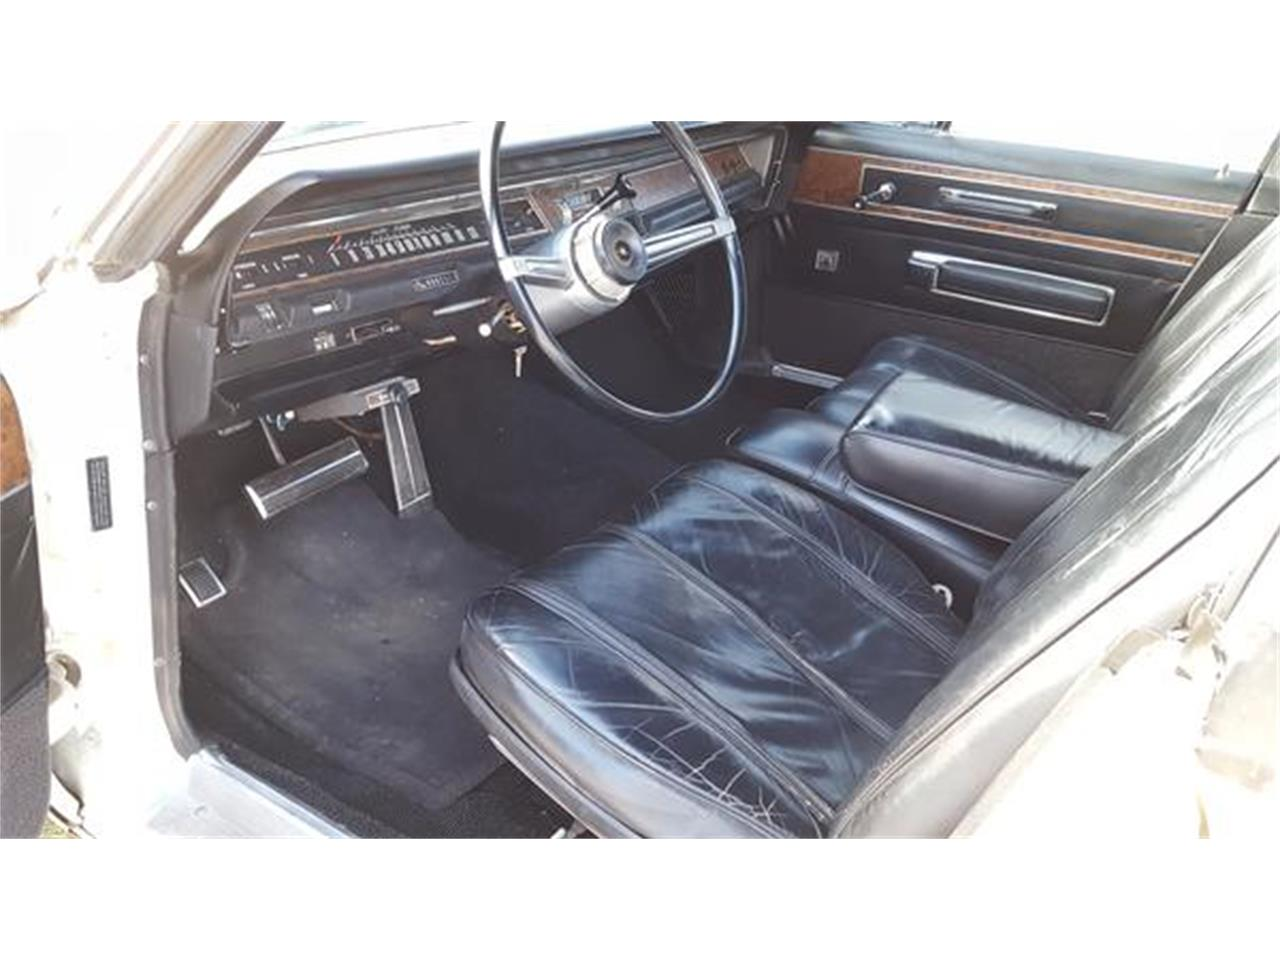 1968 Chrysler New Yorker for sale in New Ulm, MN – photo 11